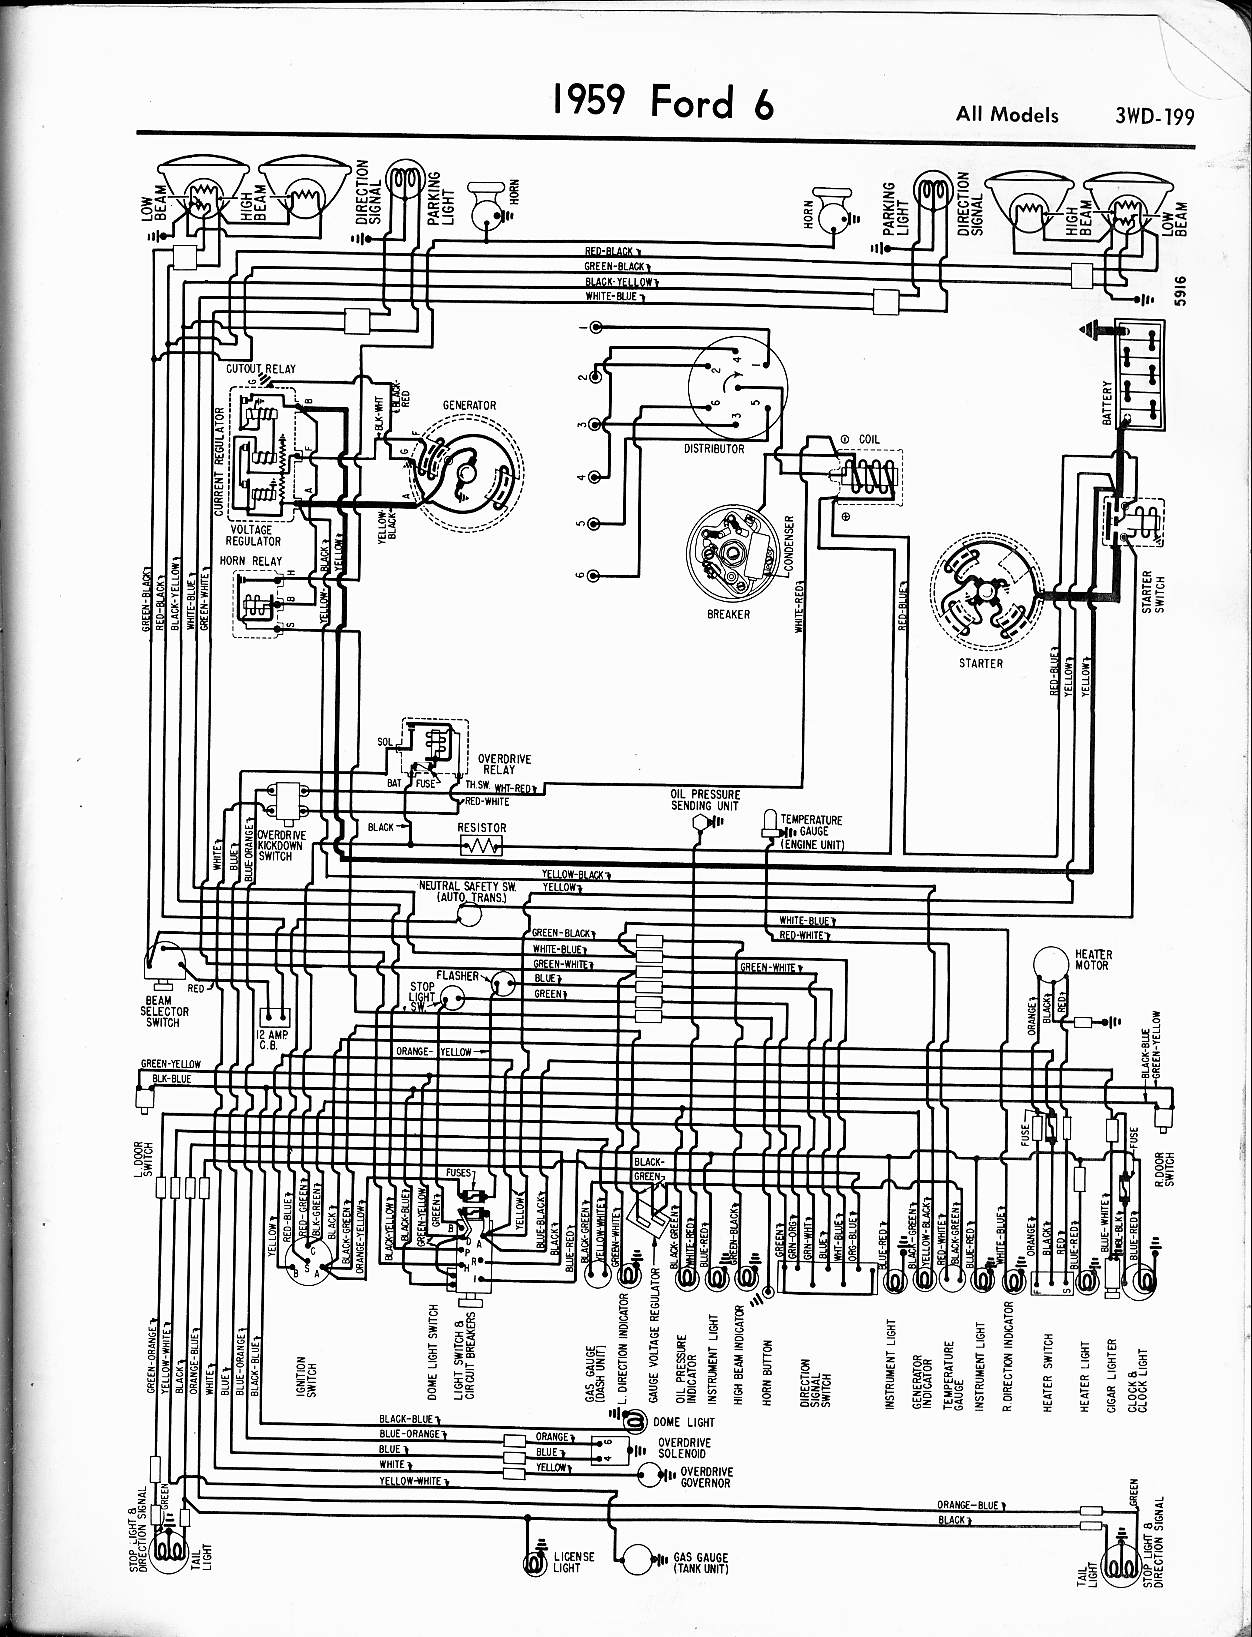 1959 Ford F100 Wiring Diagram Diagrams 1964 Mustang Fuse Box Column